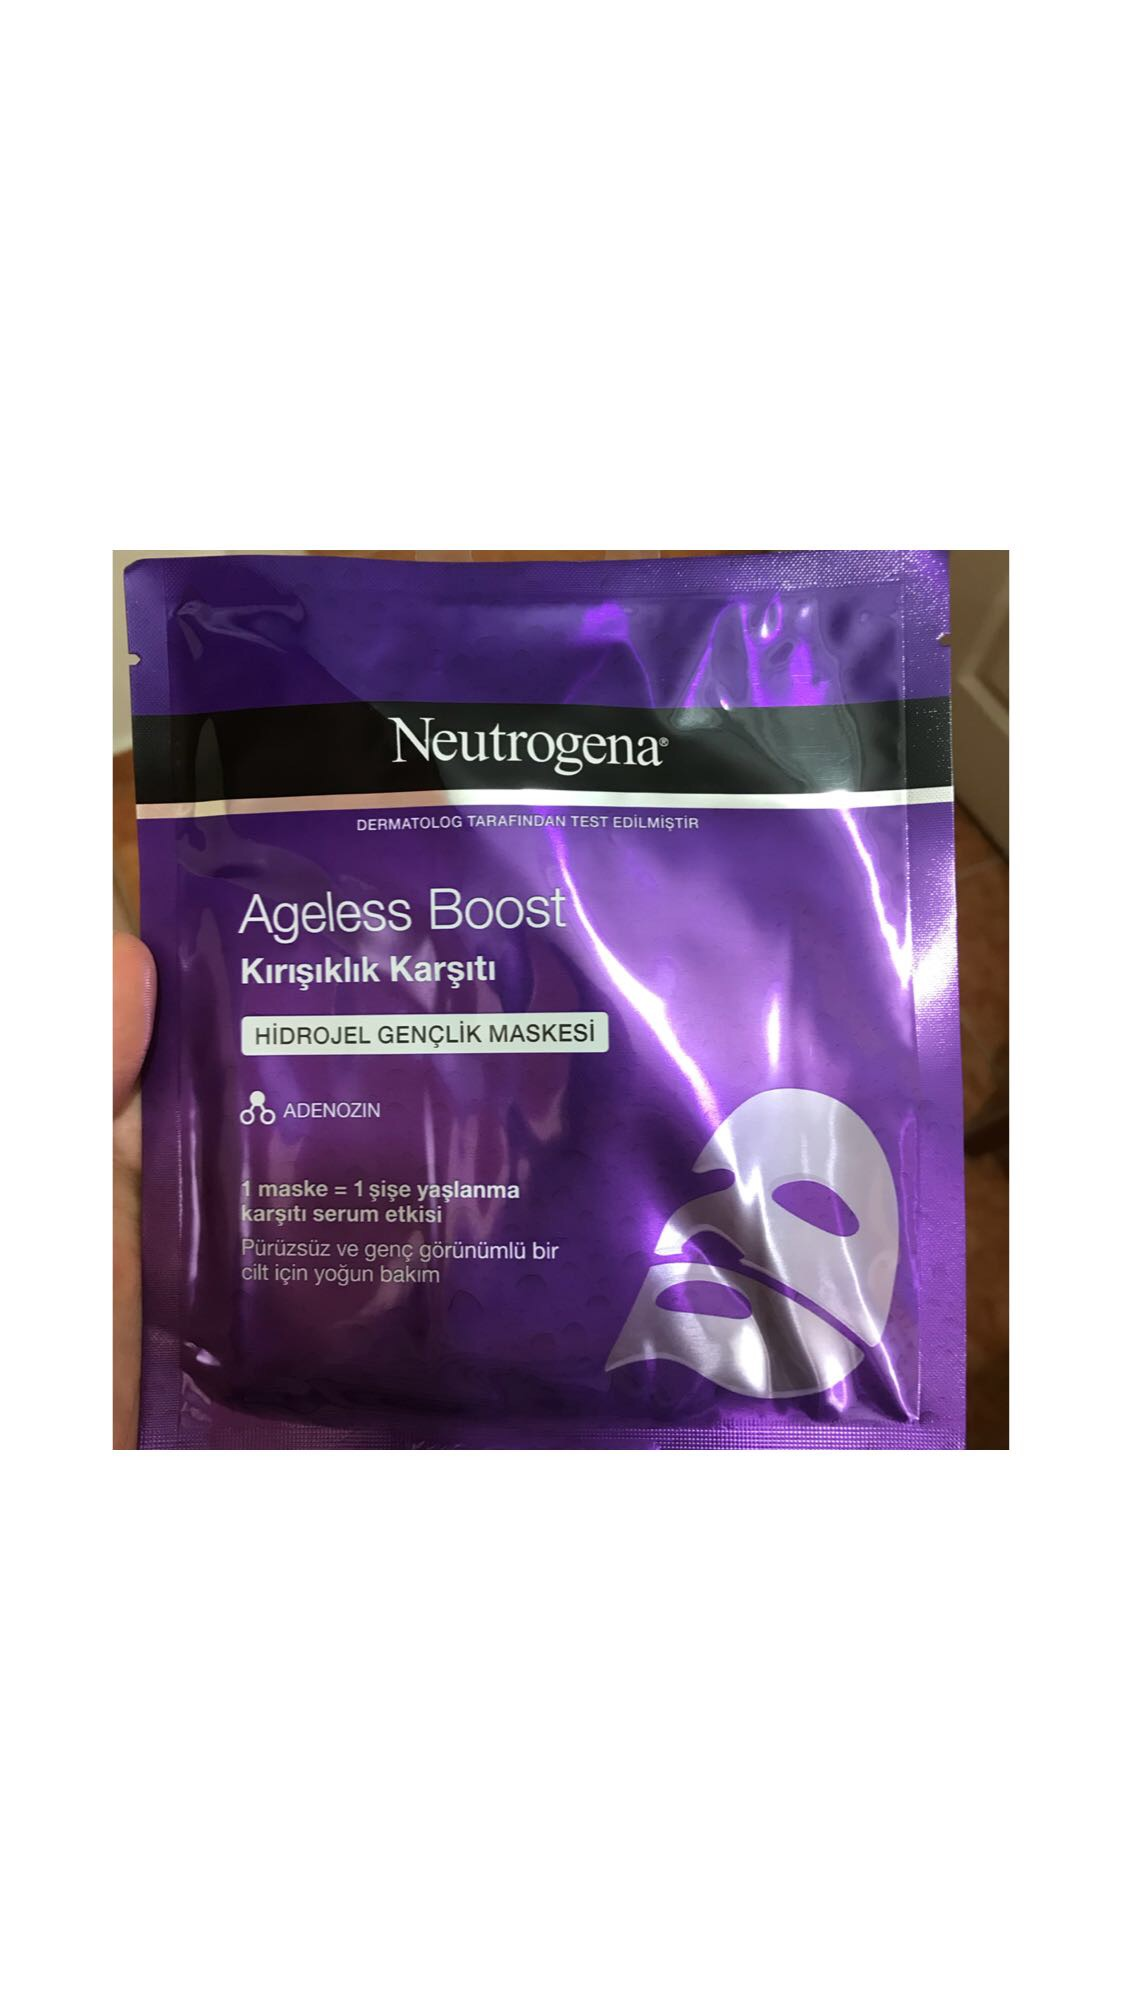 Neutrogena Ageless Boost Maske